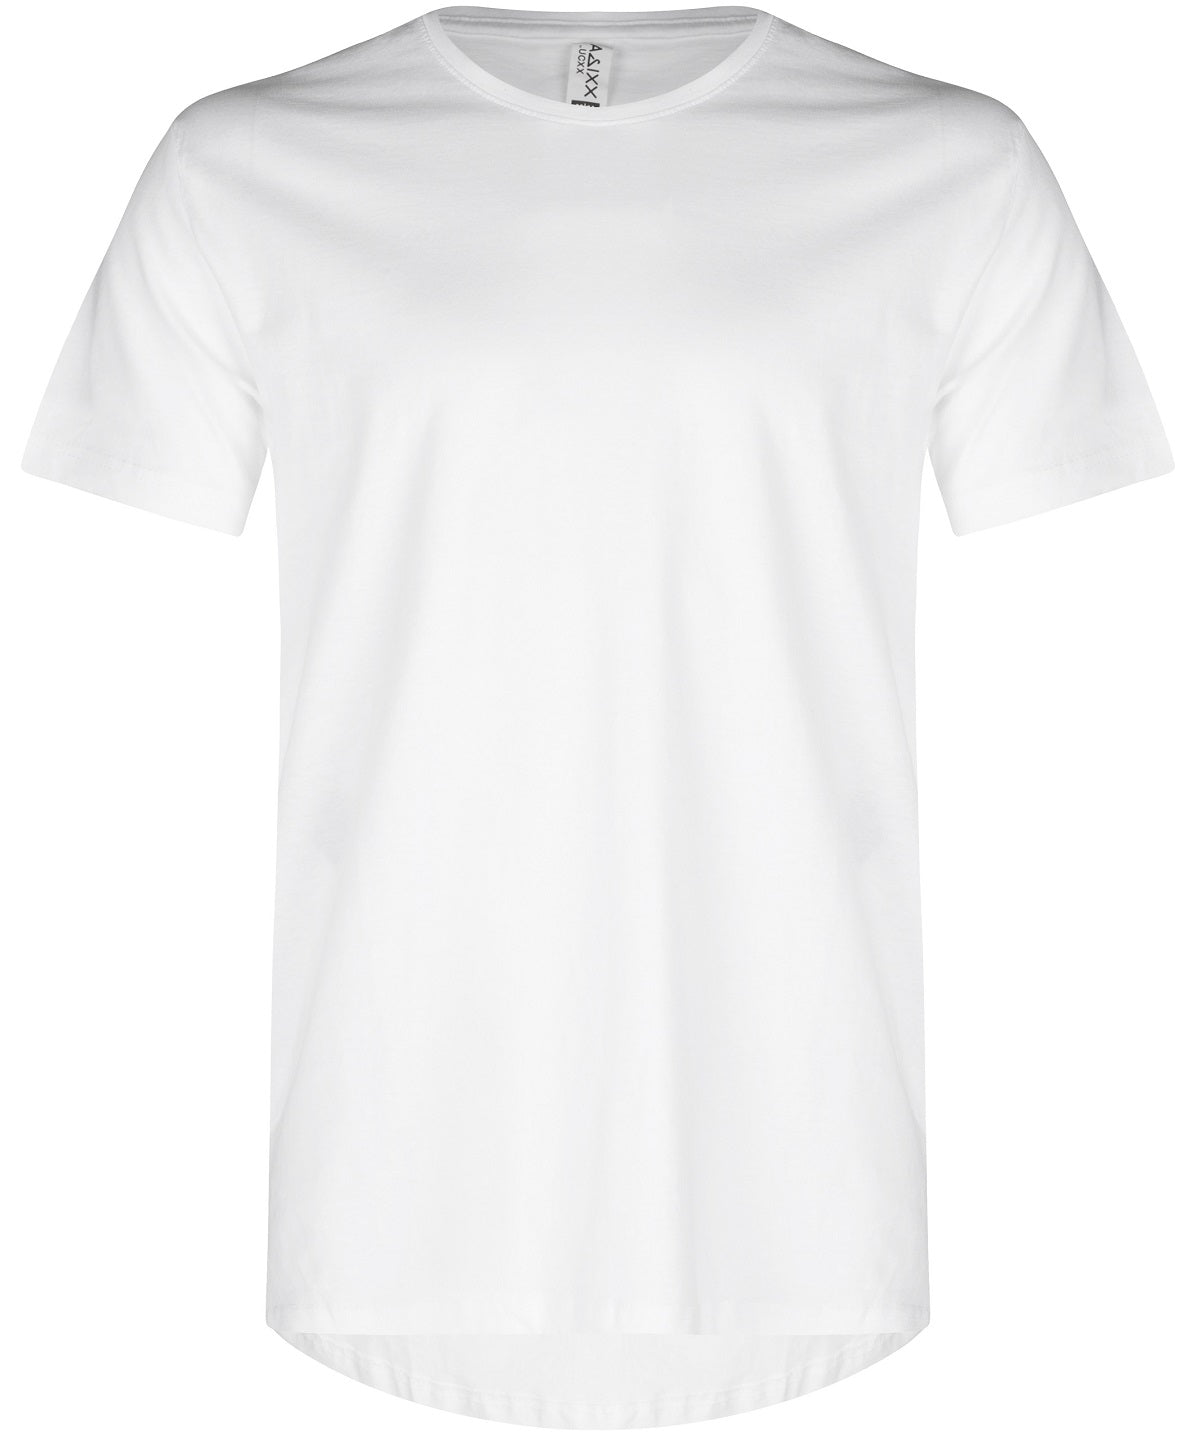 Basic Elongated Straight Scoop T-Shirt White